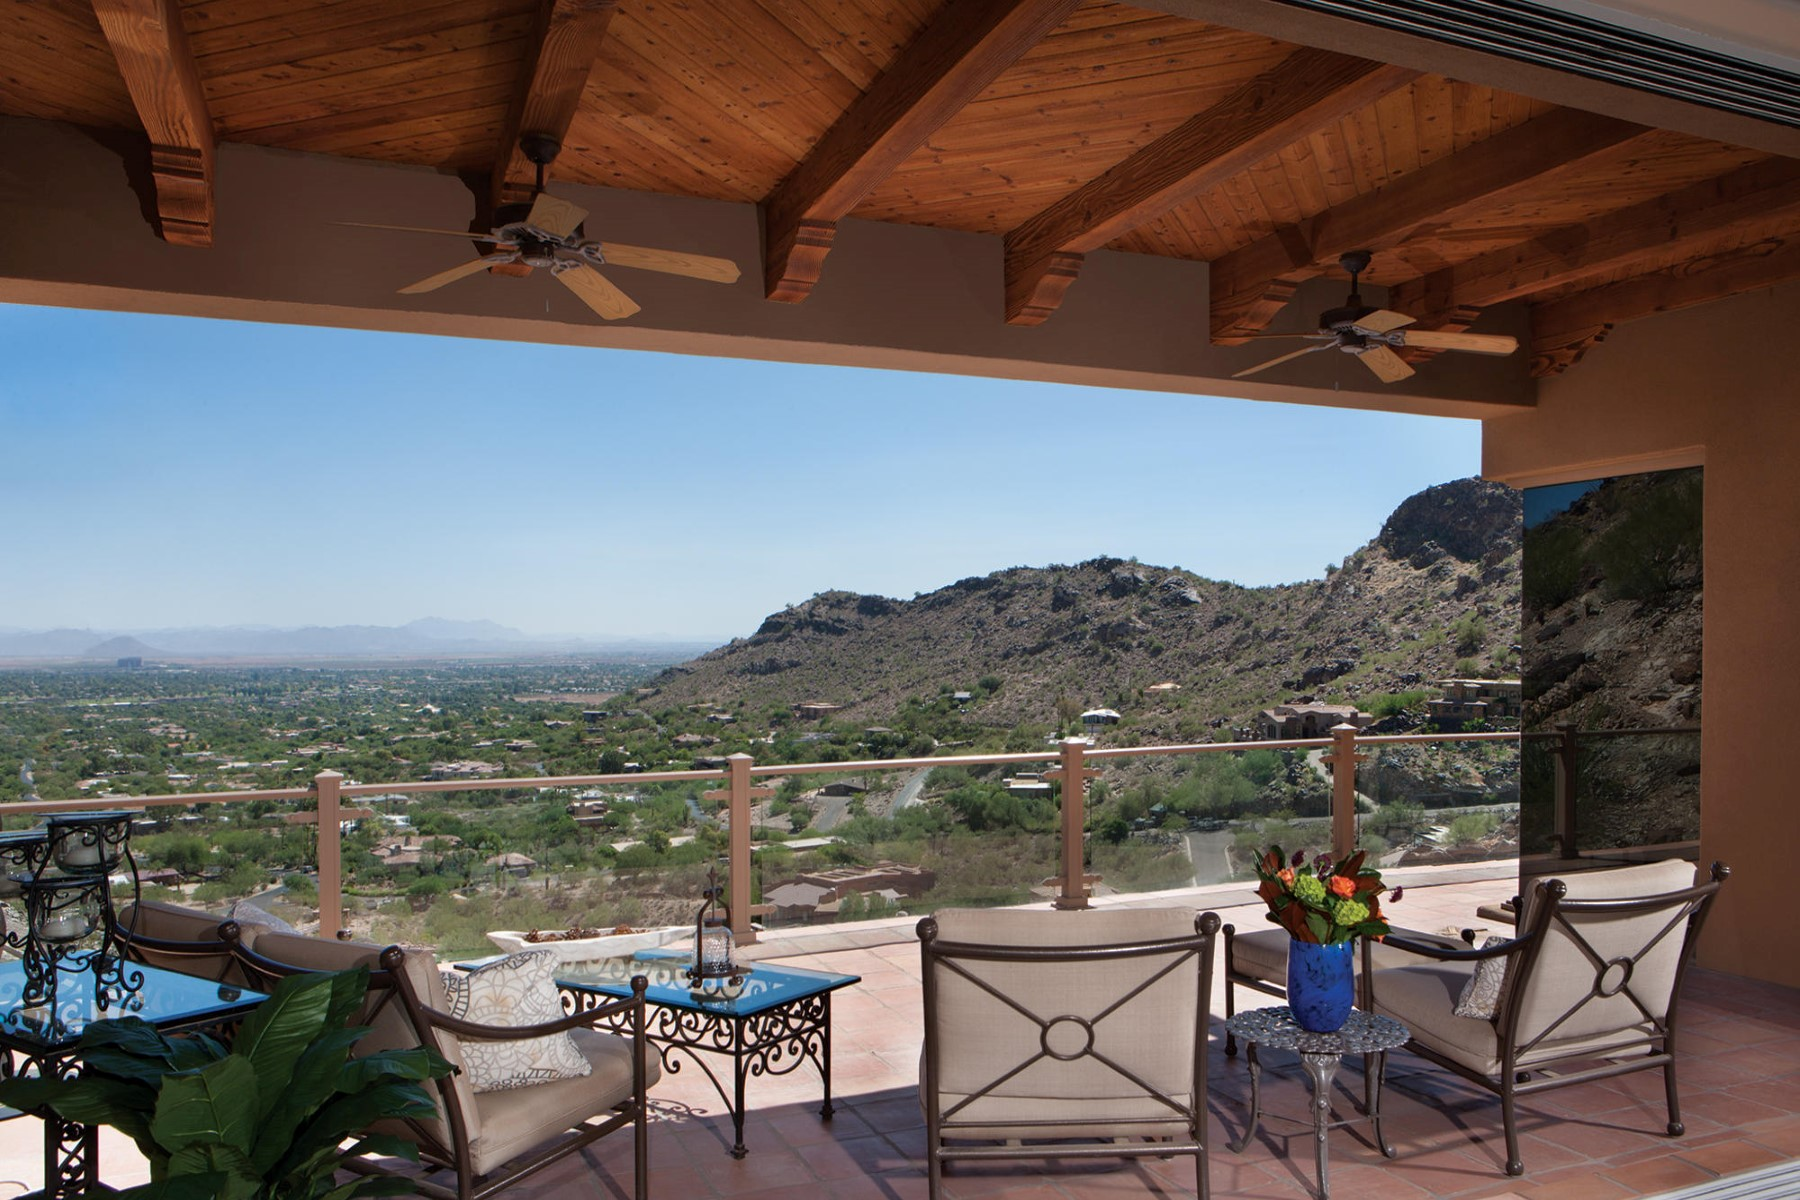 Single Family Home for Sale at Impeccably maintained spectacular hillside home with fantastic views 5749 E Cheney Dr Paradise Valley, Arizona, 85253 United States